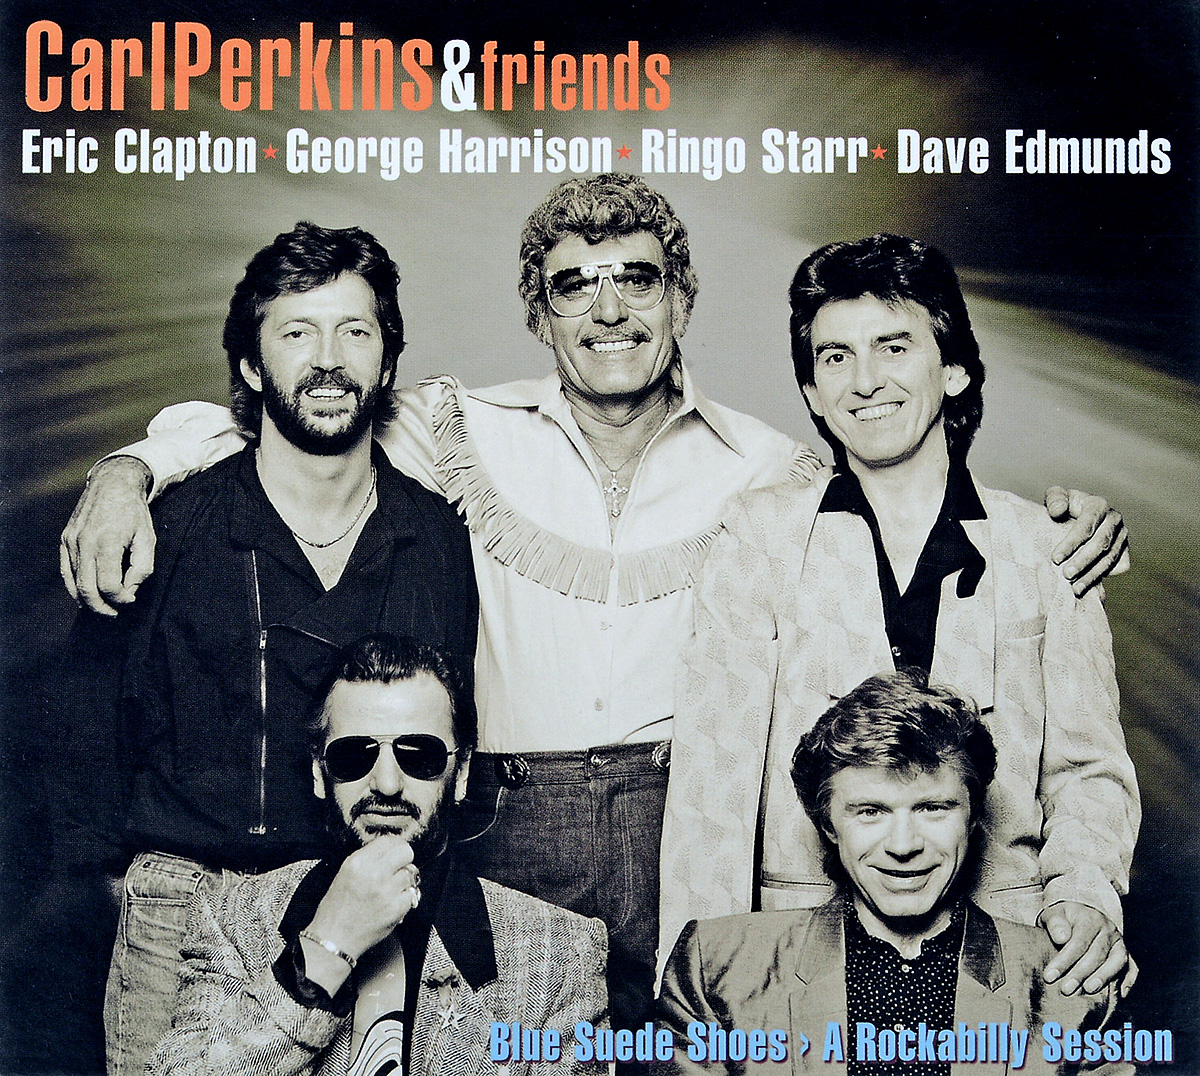 Carl Perkins & Friends: Blue Suede Shoes: A Rockabilly Session: 30th Anniversary Edition (CD + DVD) джинсы dorothy perkins curve dorothy perkins curve do029ewrrq76